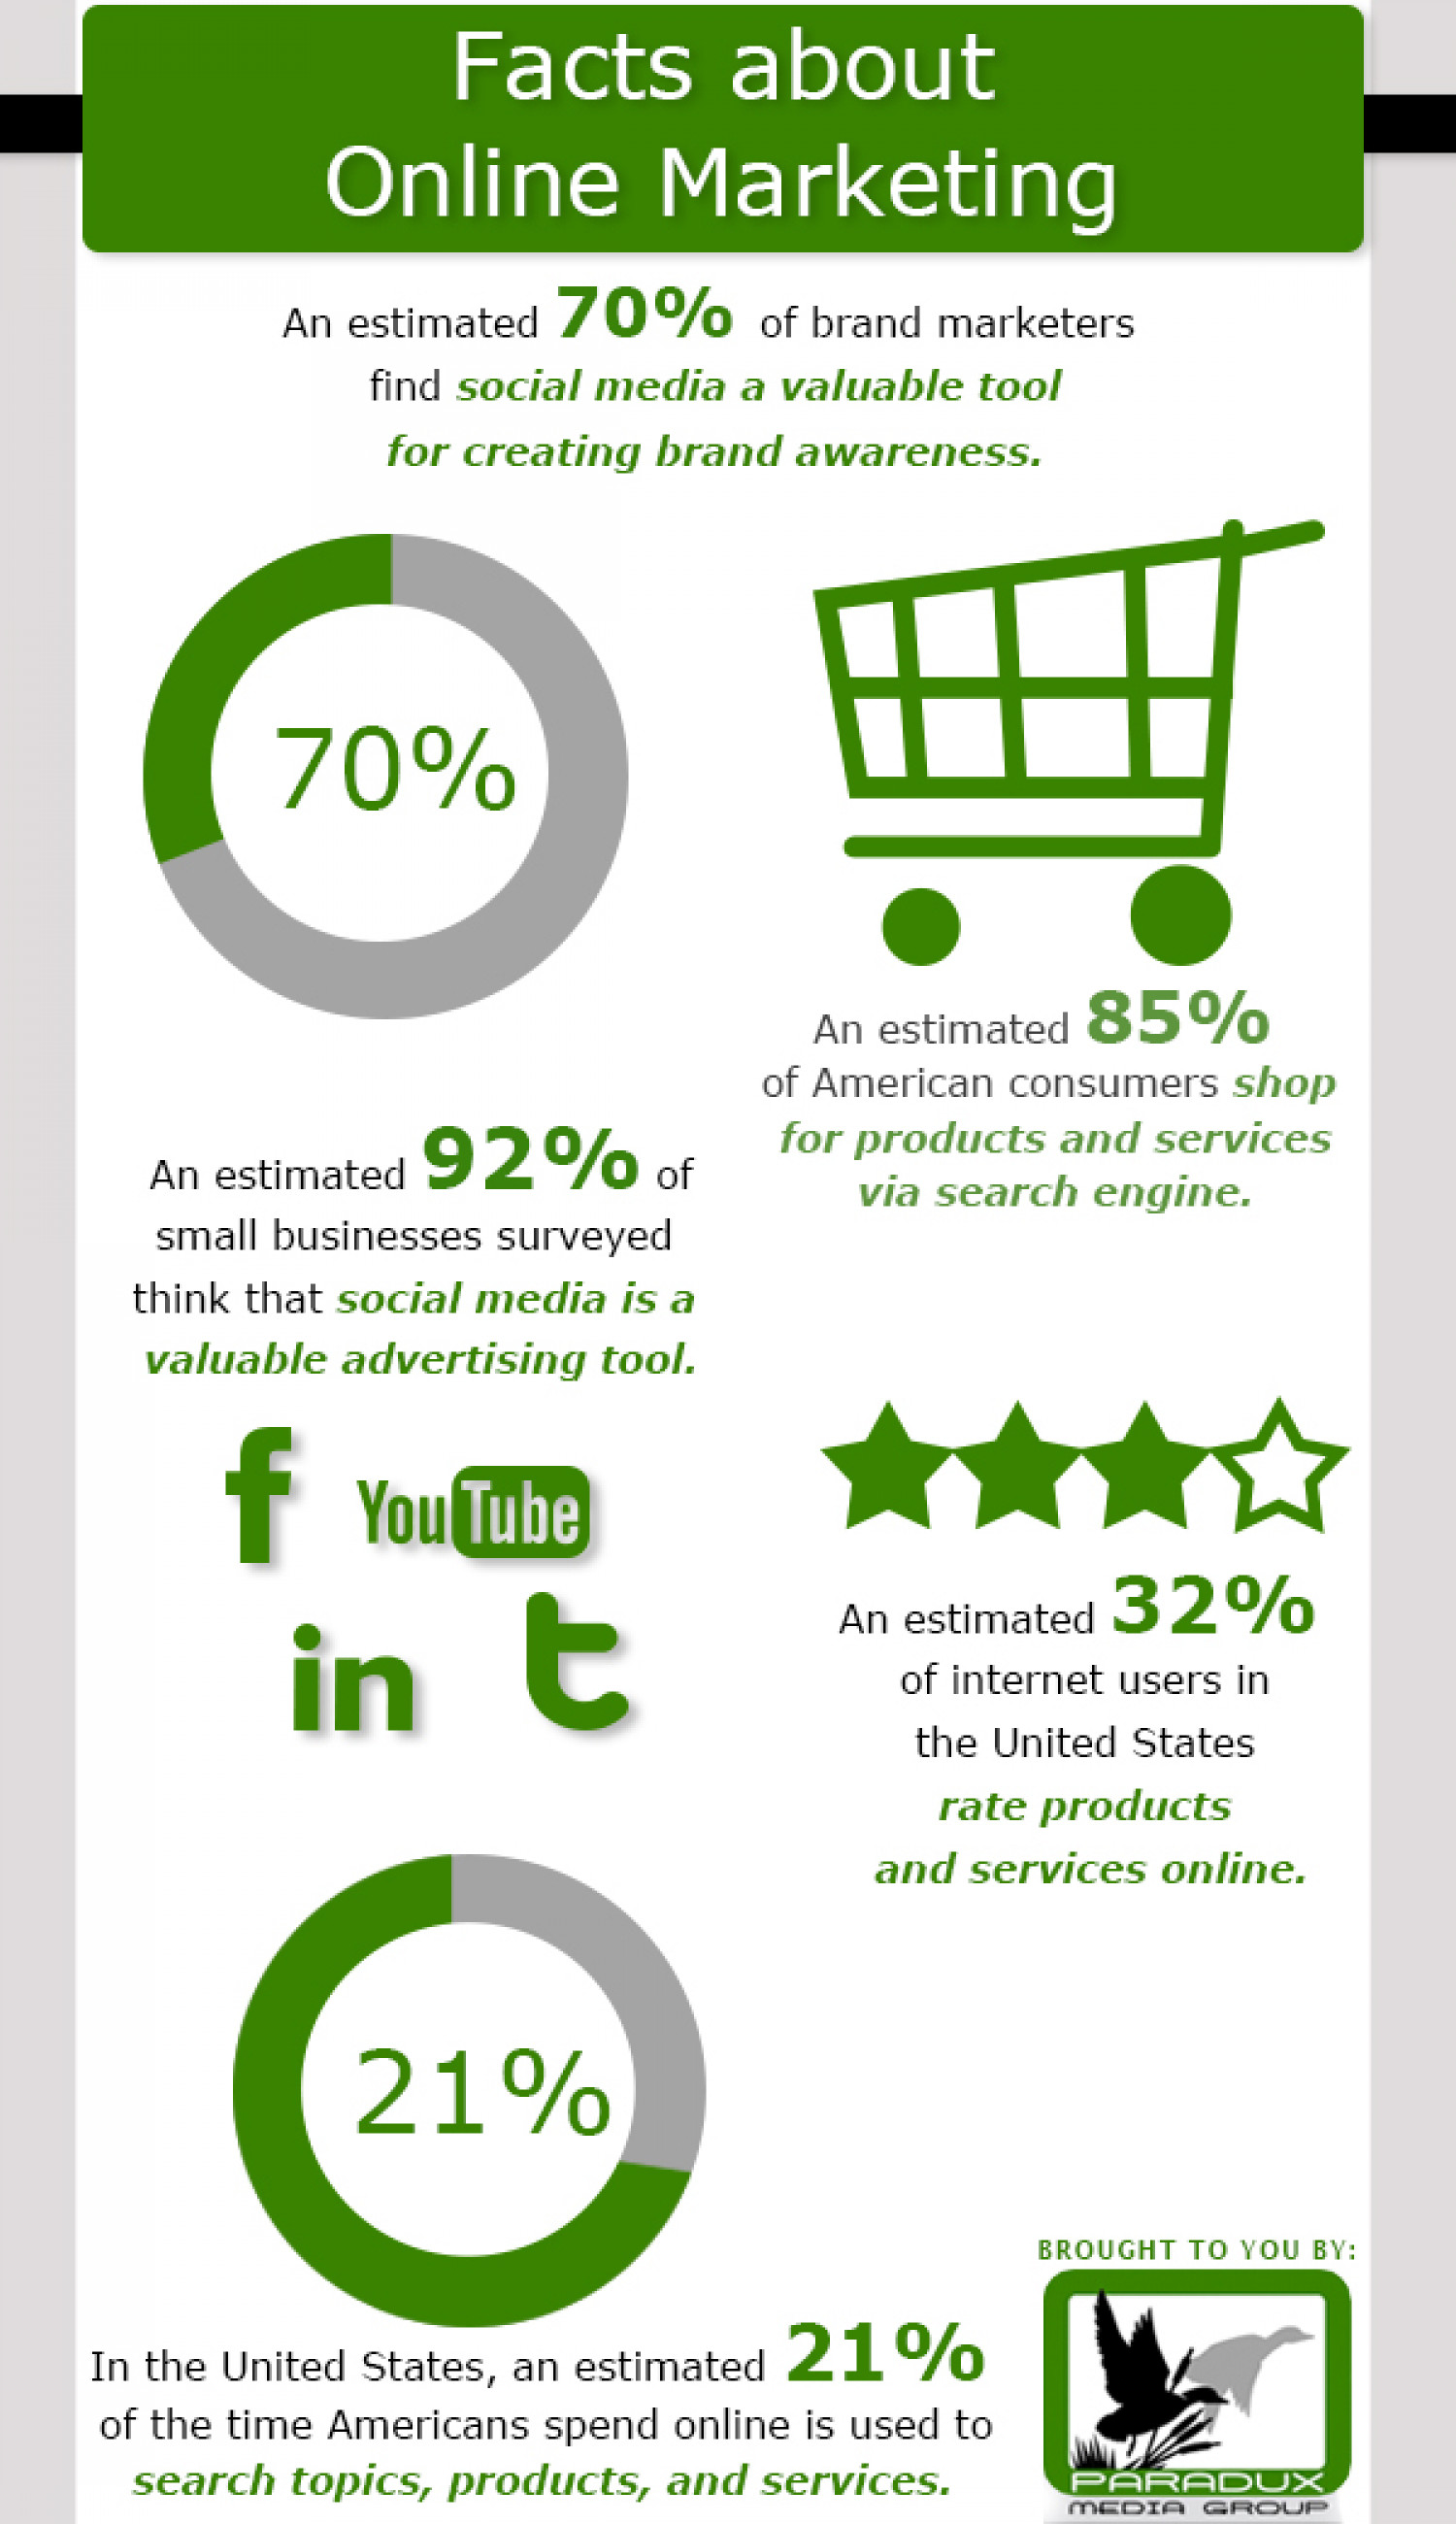 Facts About Online Marketing Infographic